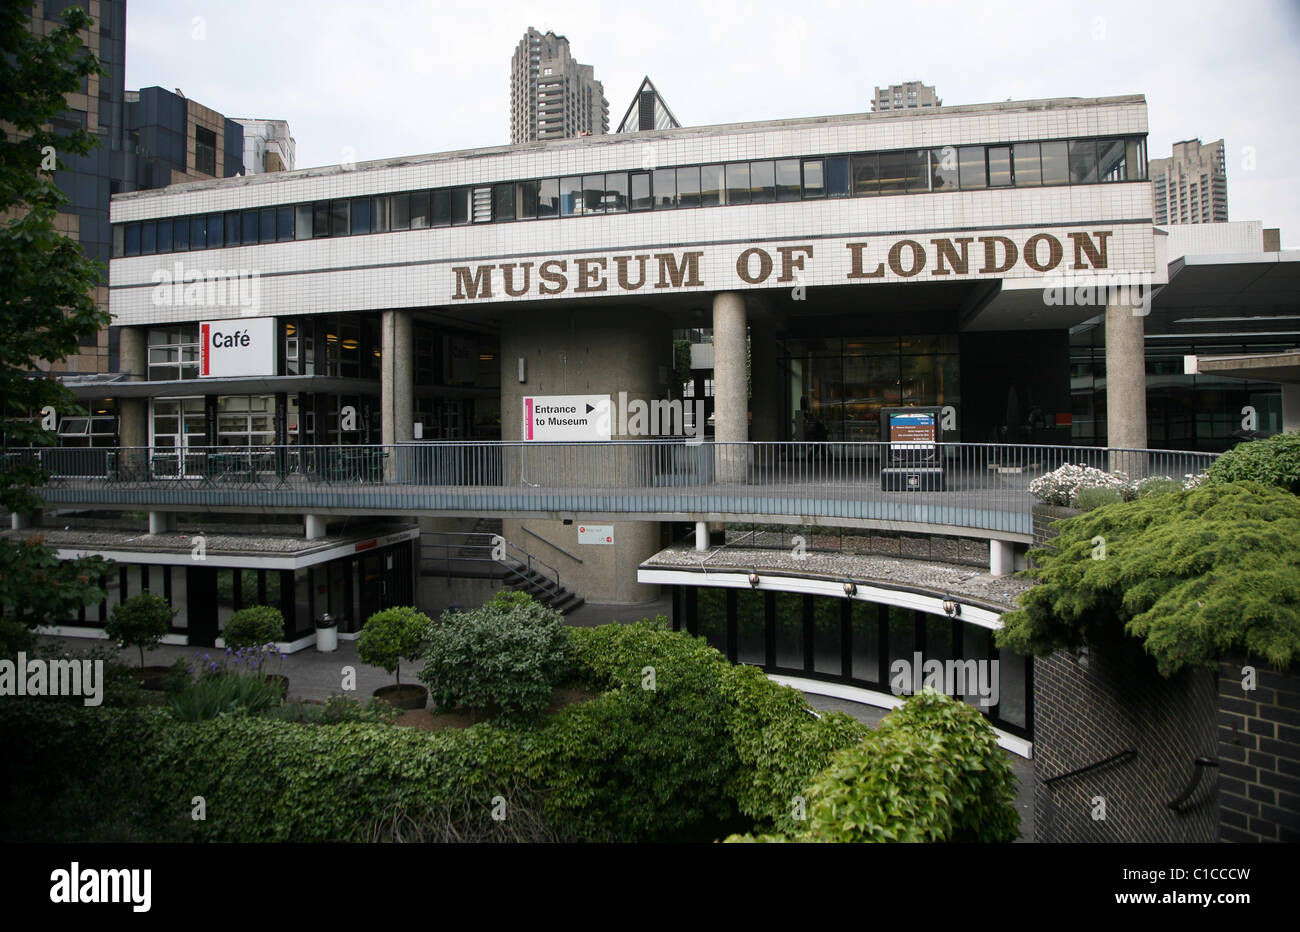 General View gv of the Museum of London in London, England. - Stock Image